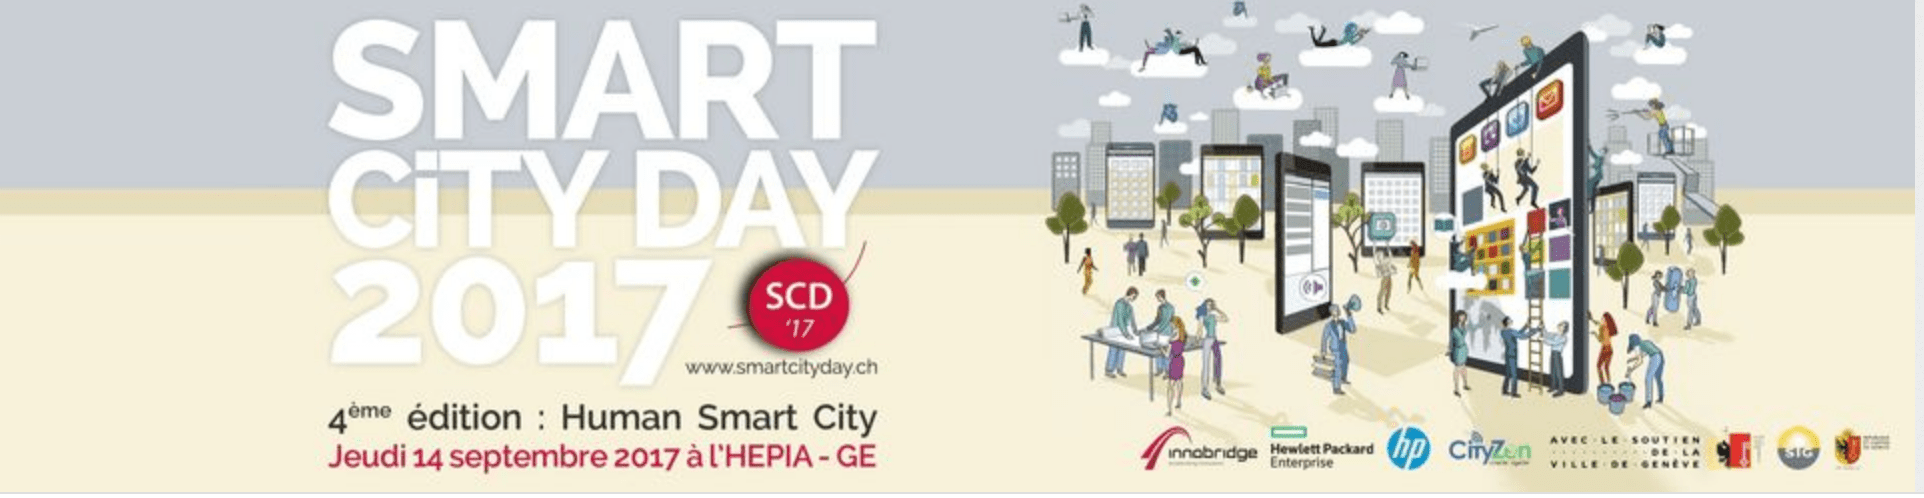 Logo: Smart City Day